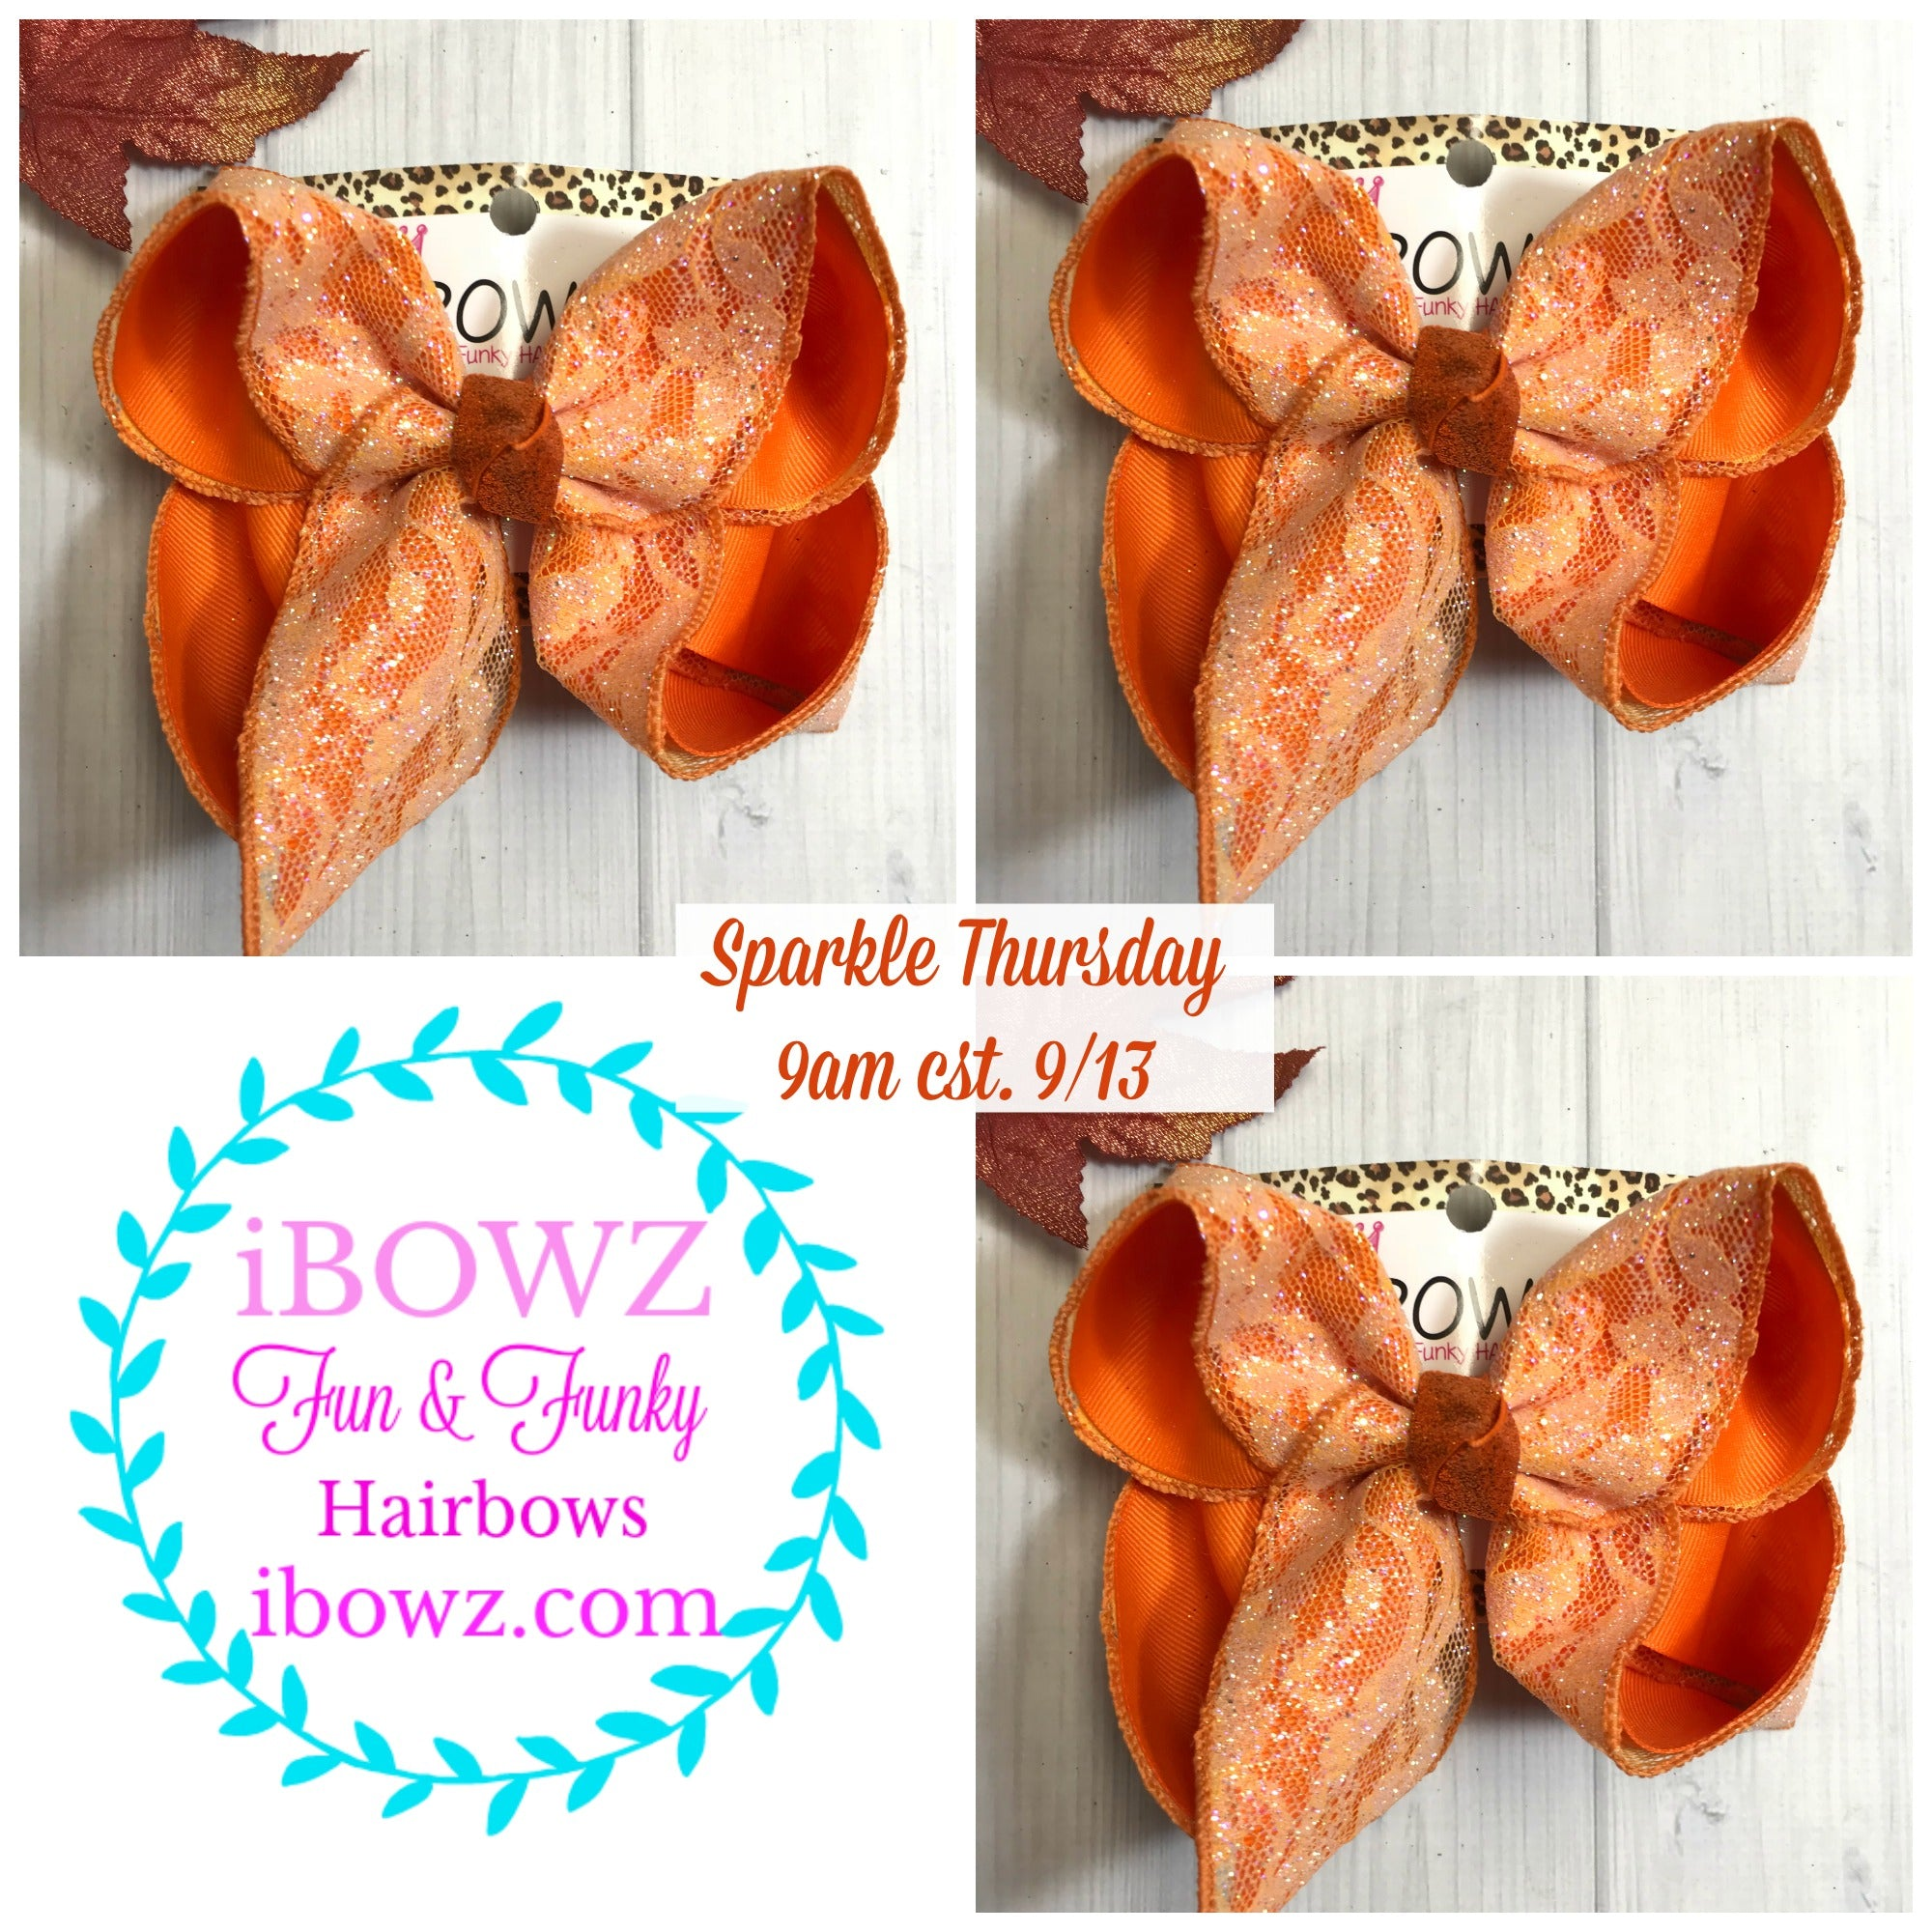 Sparkle Thursday Orange Glitter Lace Fun iBOWZ | Halloween Lace